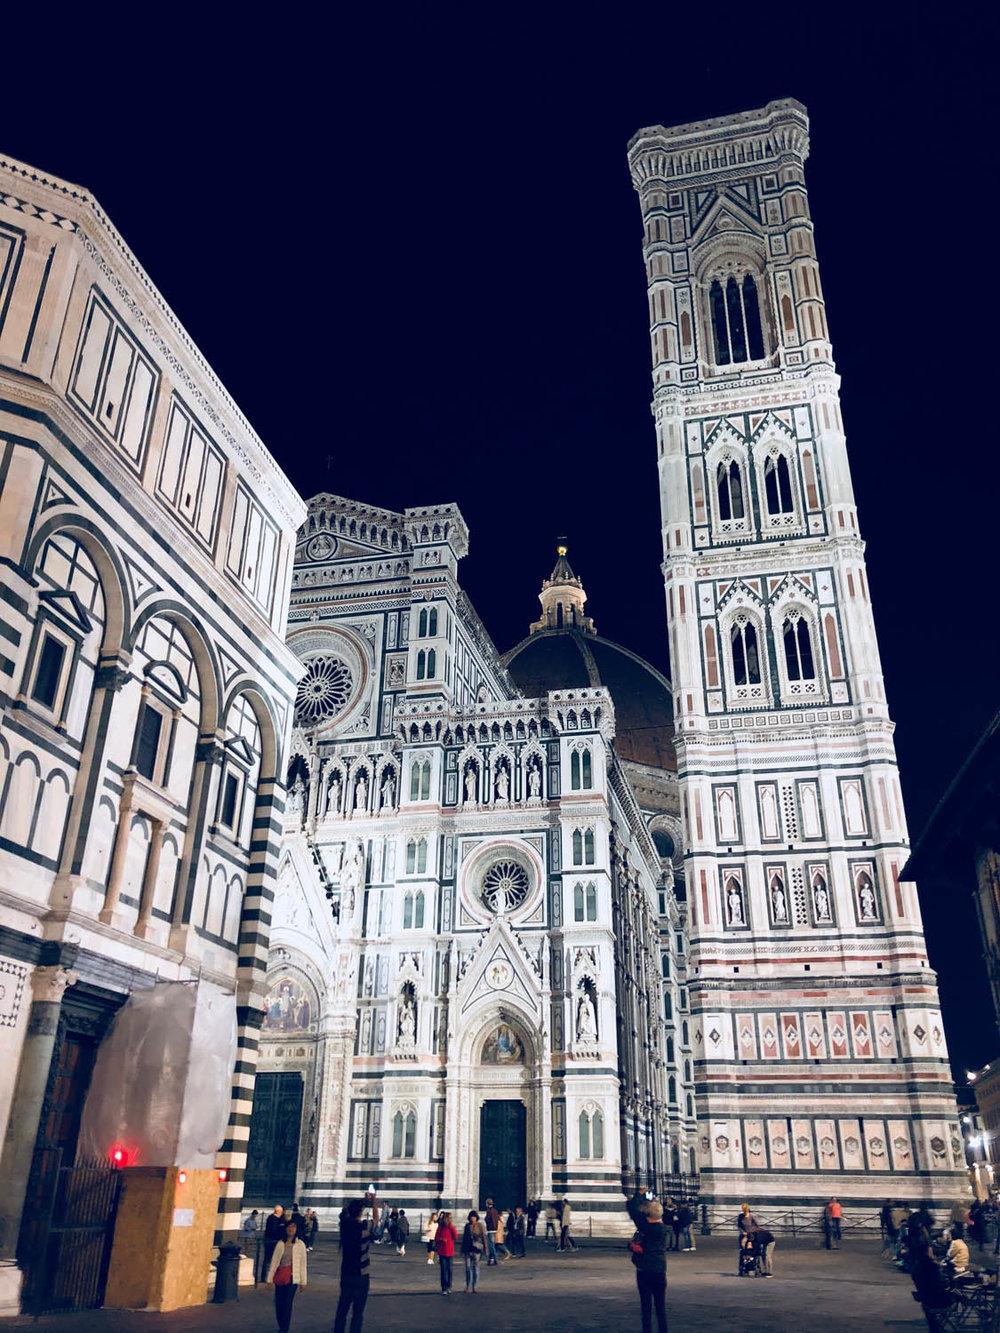 Italian cathedral at night